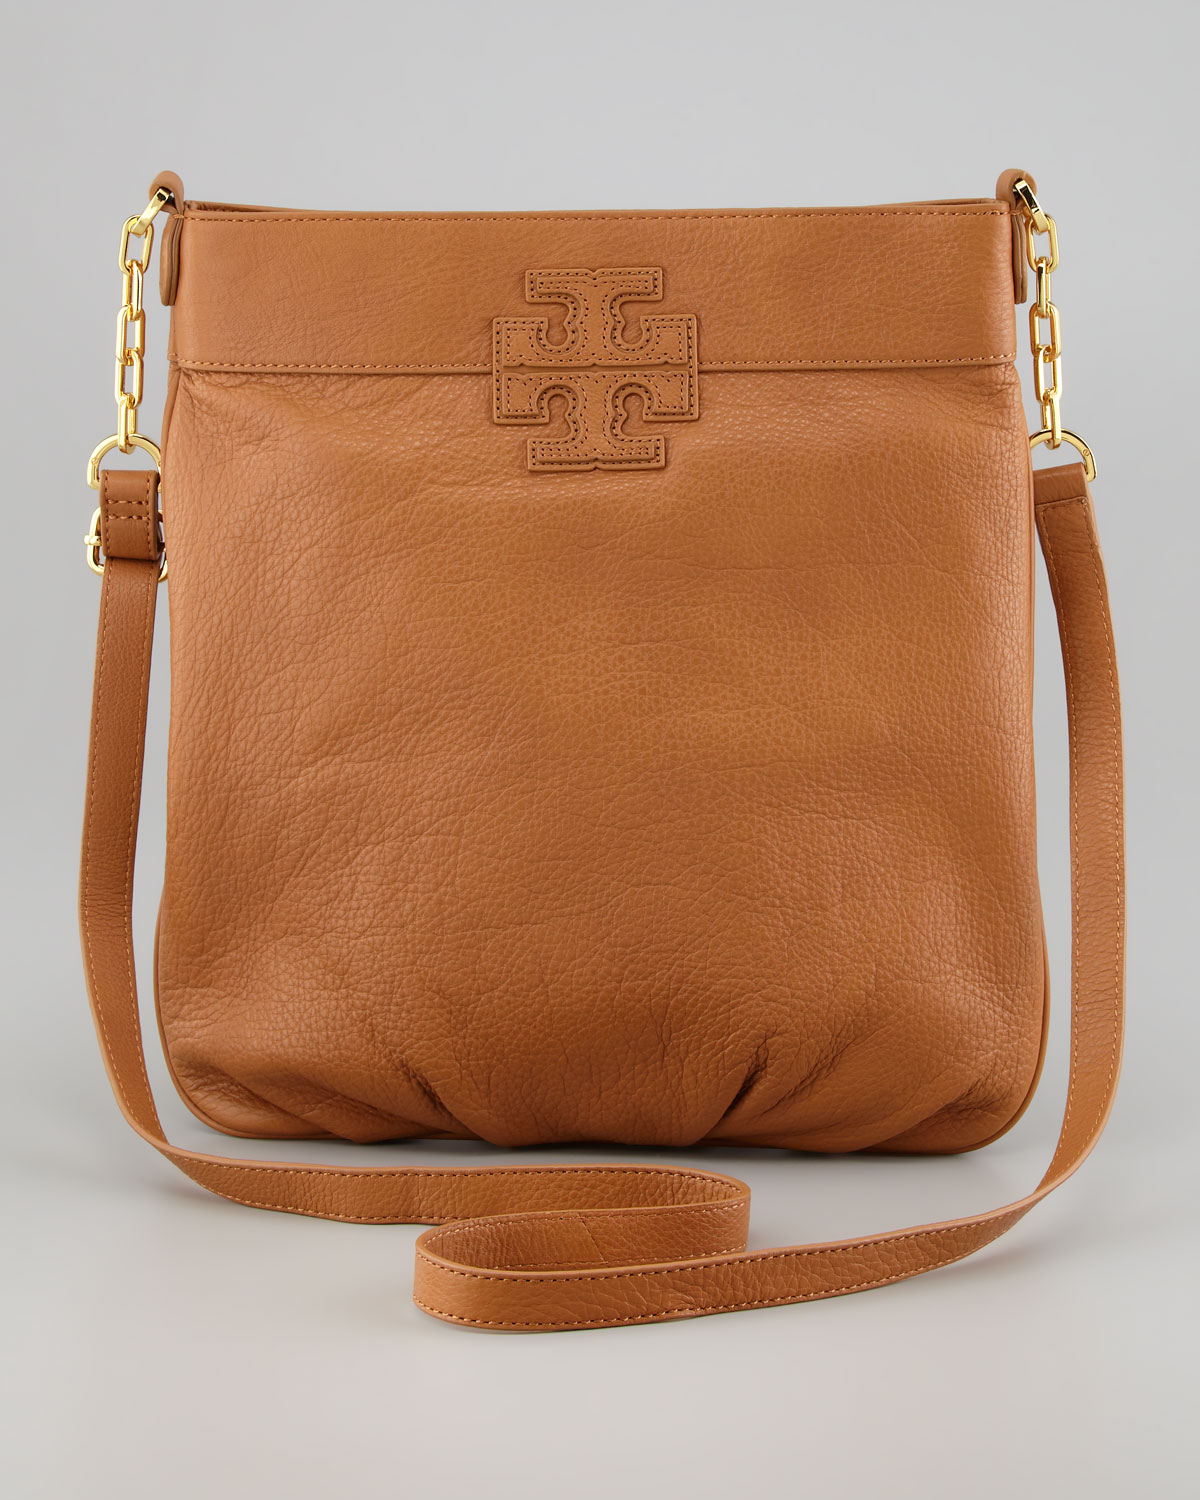 Tory burch Cross Body Book Bag in Brown | Lyst